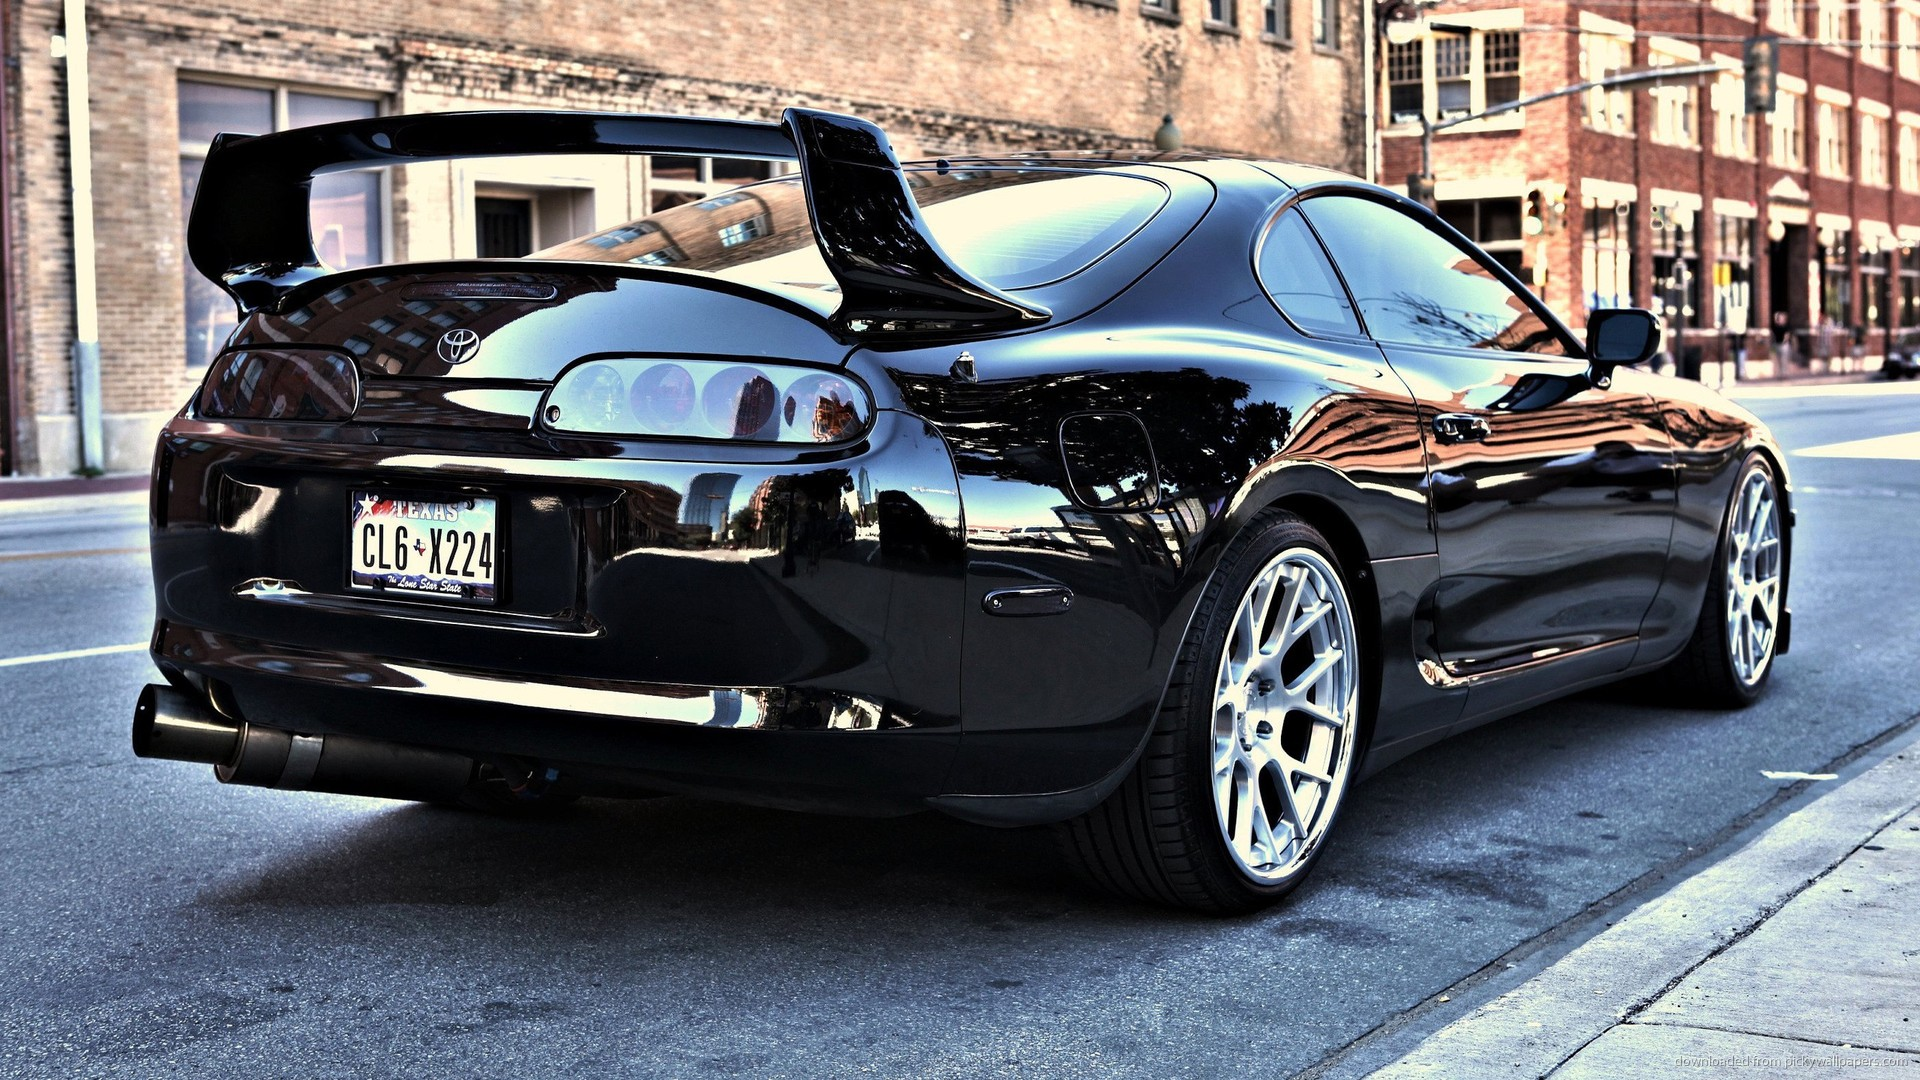 Black Tuned Toyota Supra Wallpaper For iPhone 4 1920x1080